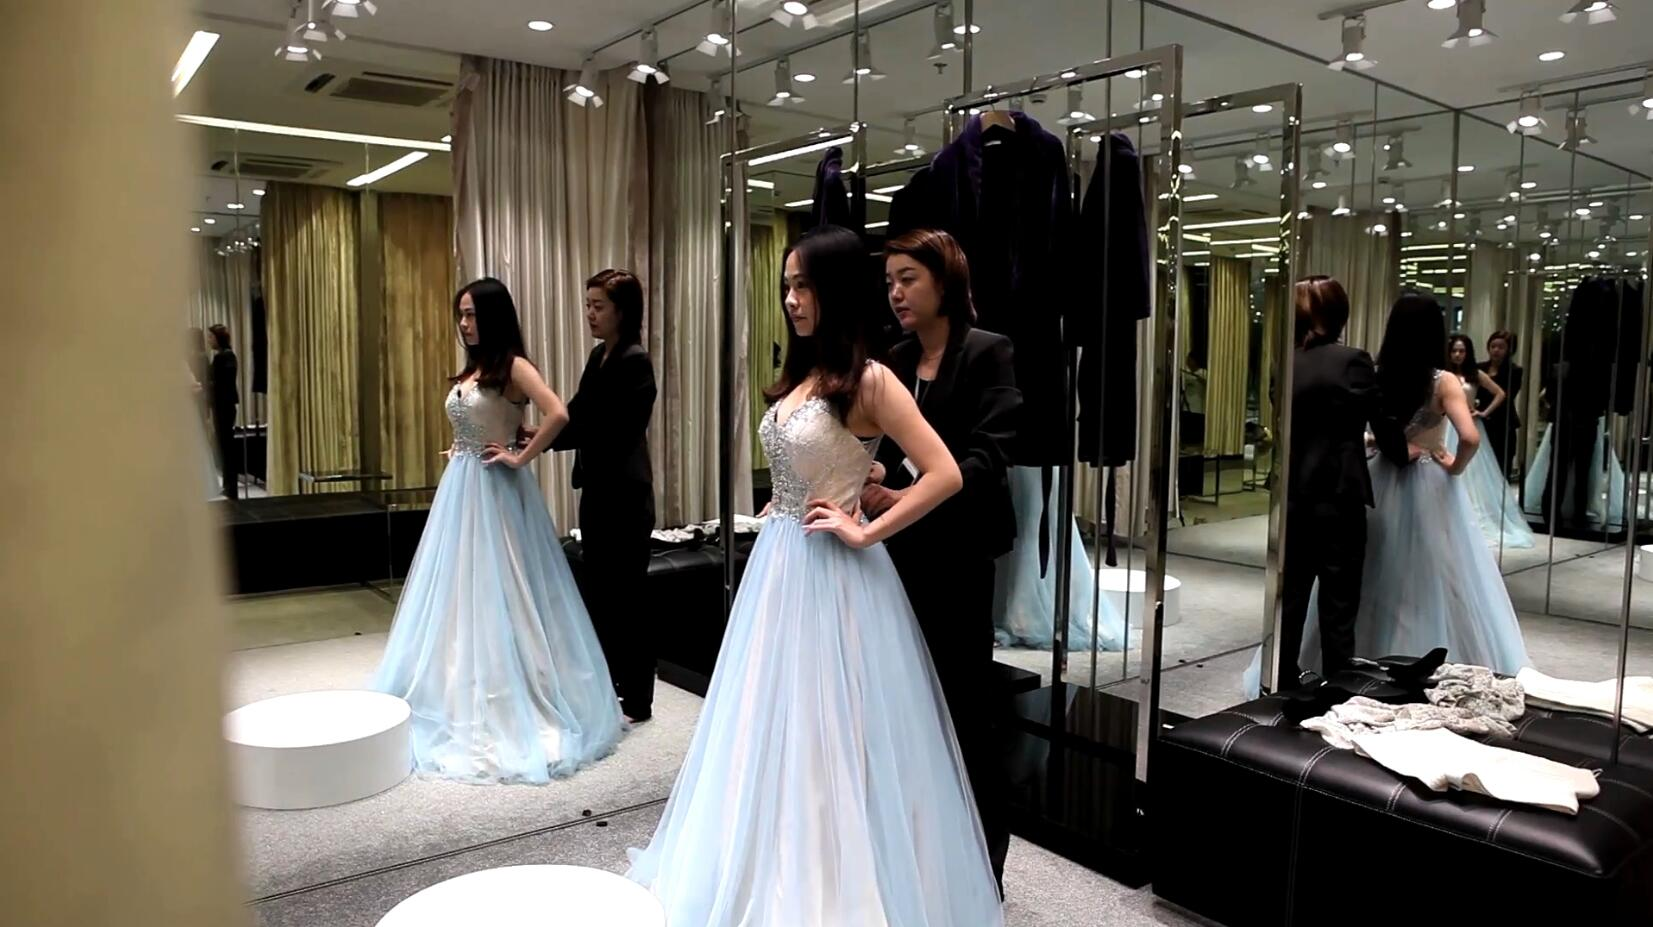 MS Paris Sends Buyers To New Yorks Fifth Avenue And Fashion Shows In Most Of The Clothes It Rents Out Range Retail Price From 2000 7000 Yuan